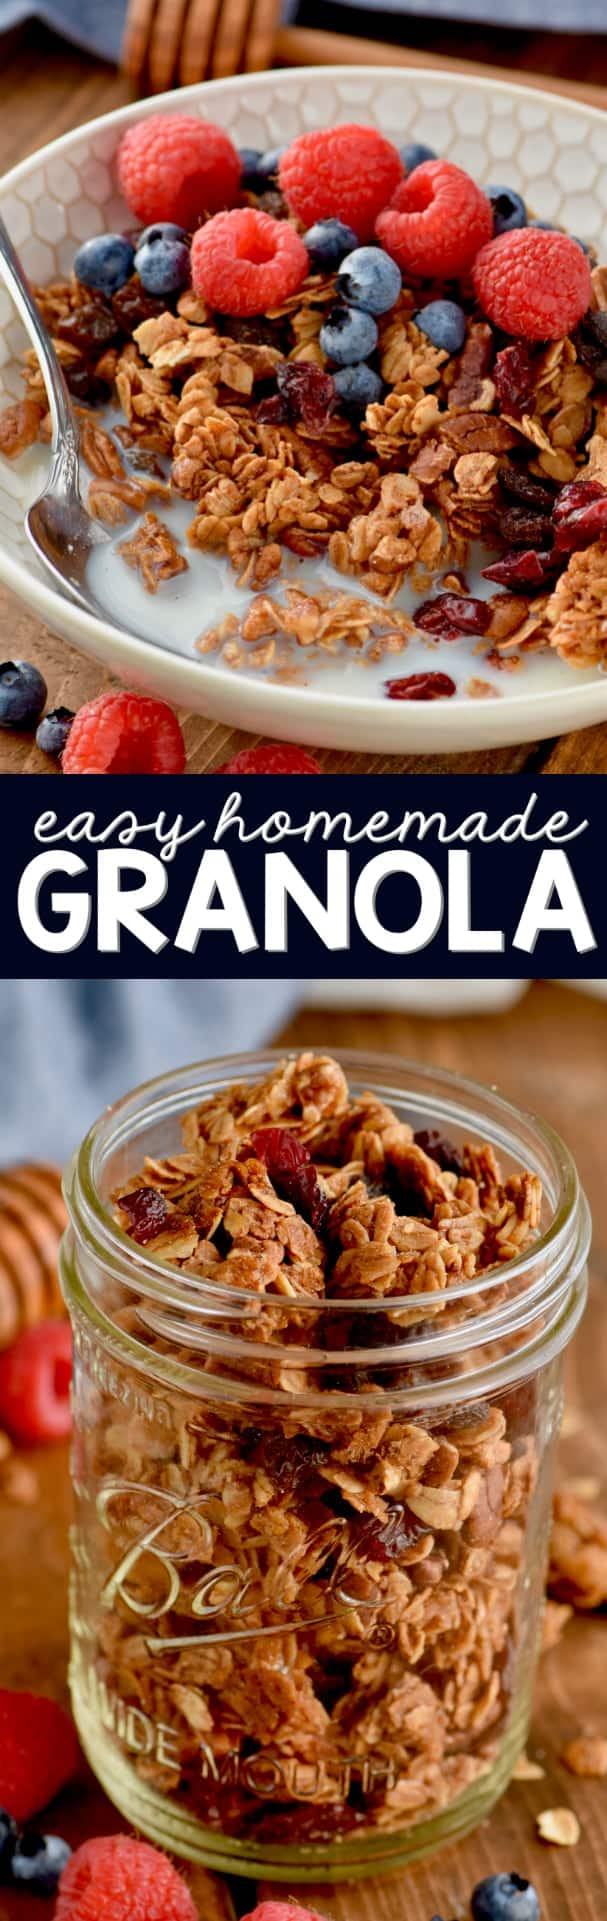 This easy Homemade Granola Recipe with honey is full of easy to find ingredients that can be customized depending on what flavor you are going for!